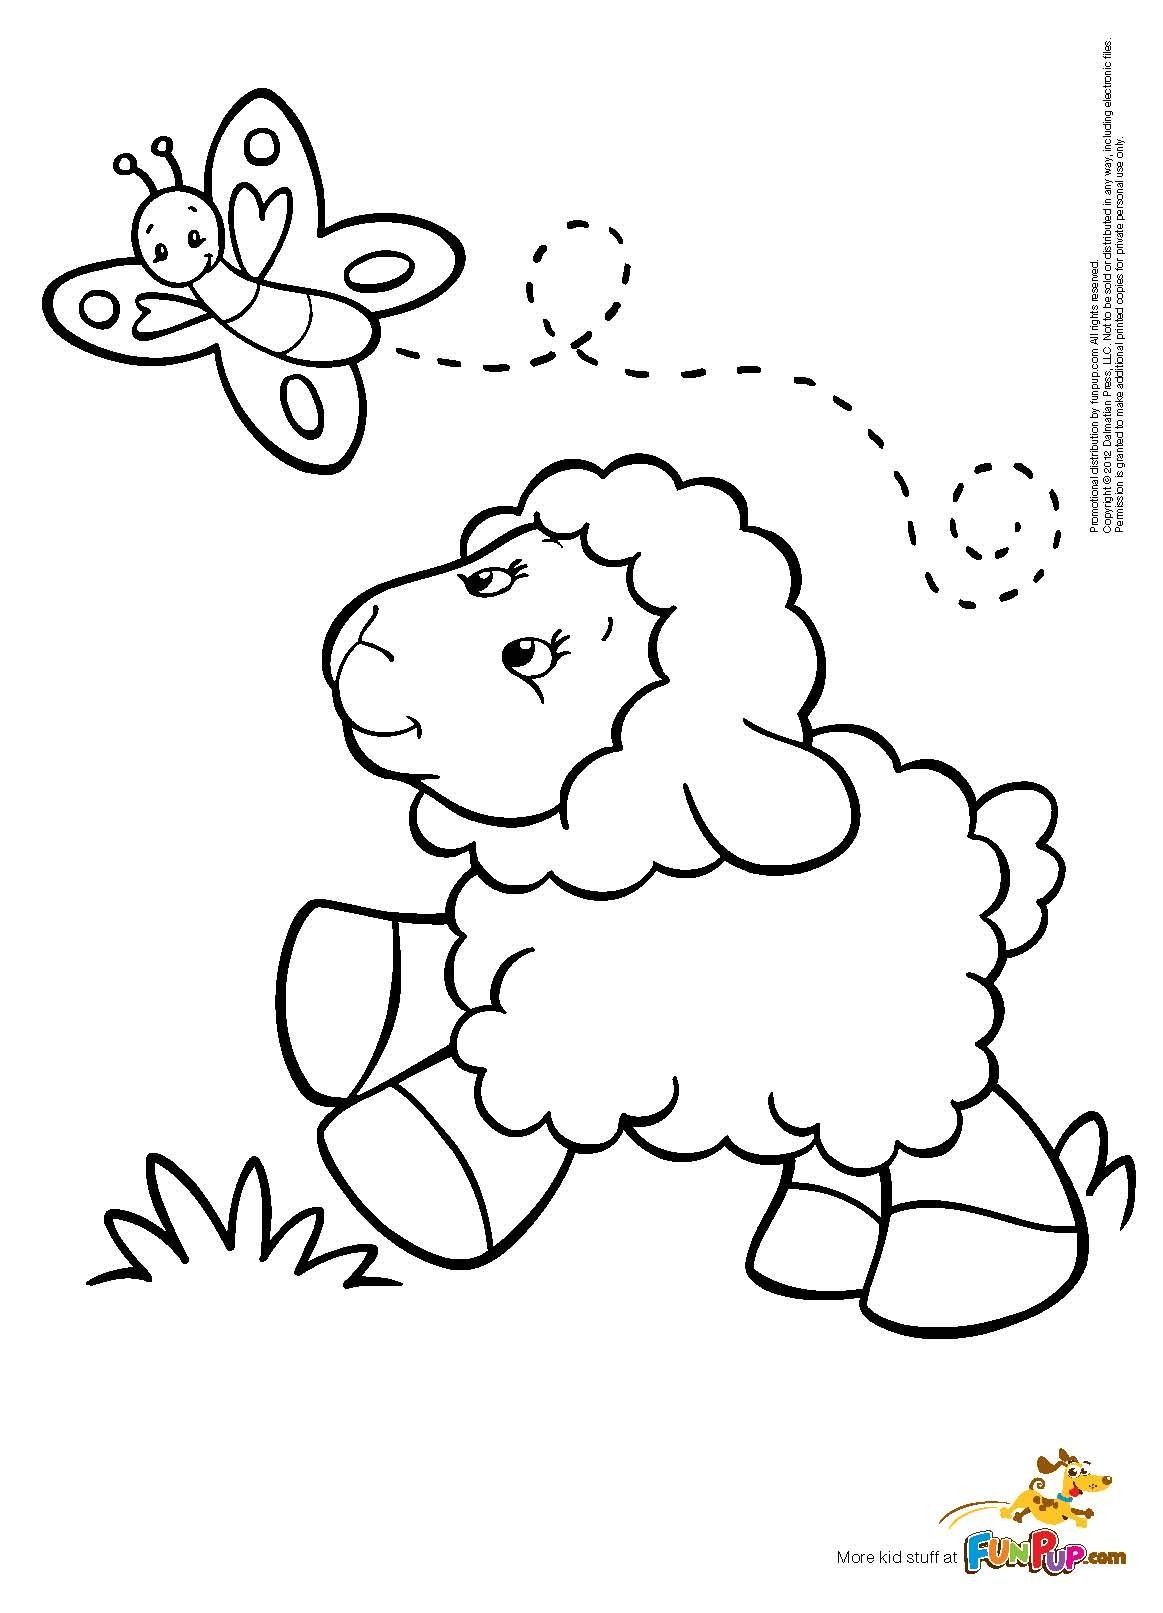 Butterfly Sheep Coloring Page Free Printable Coloring Pages